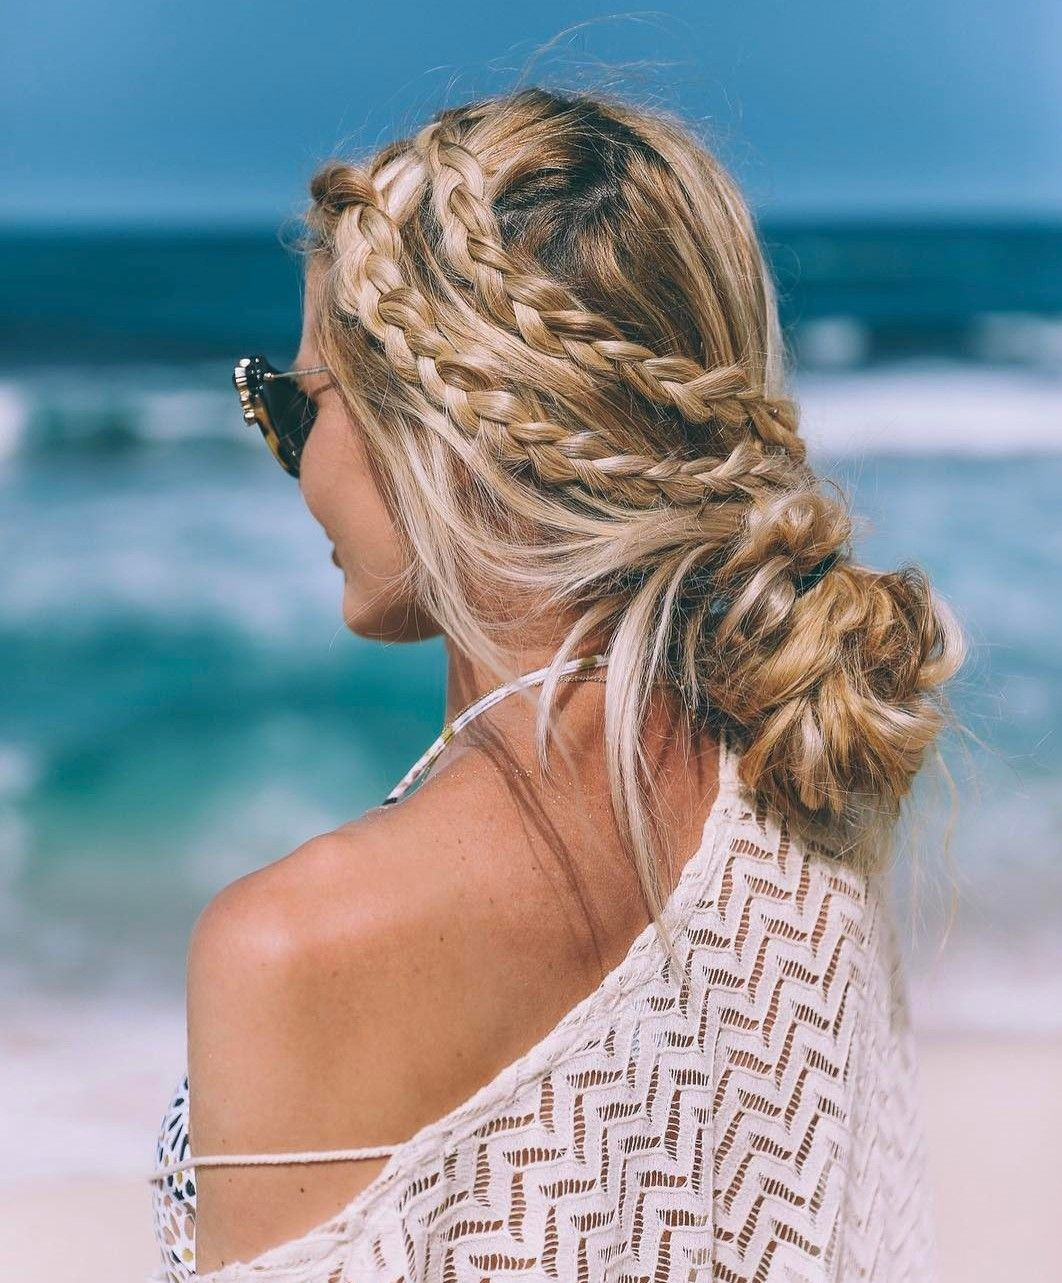 20 Inspiring Beach Hair Ideas for Beautiful Vacation